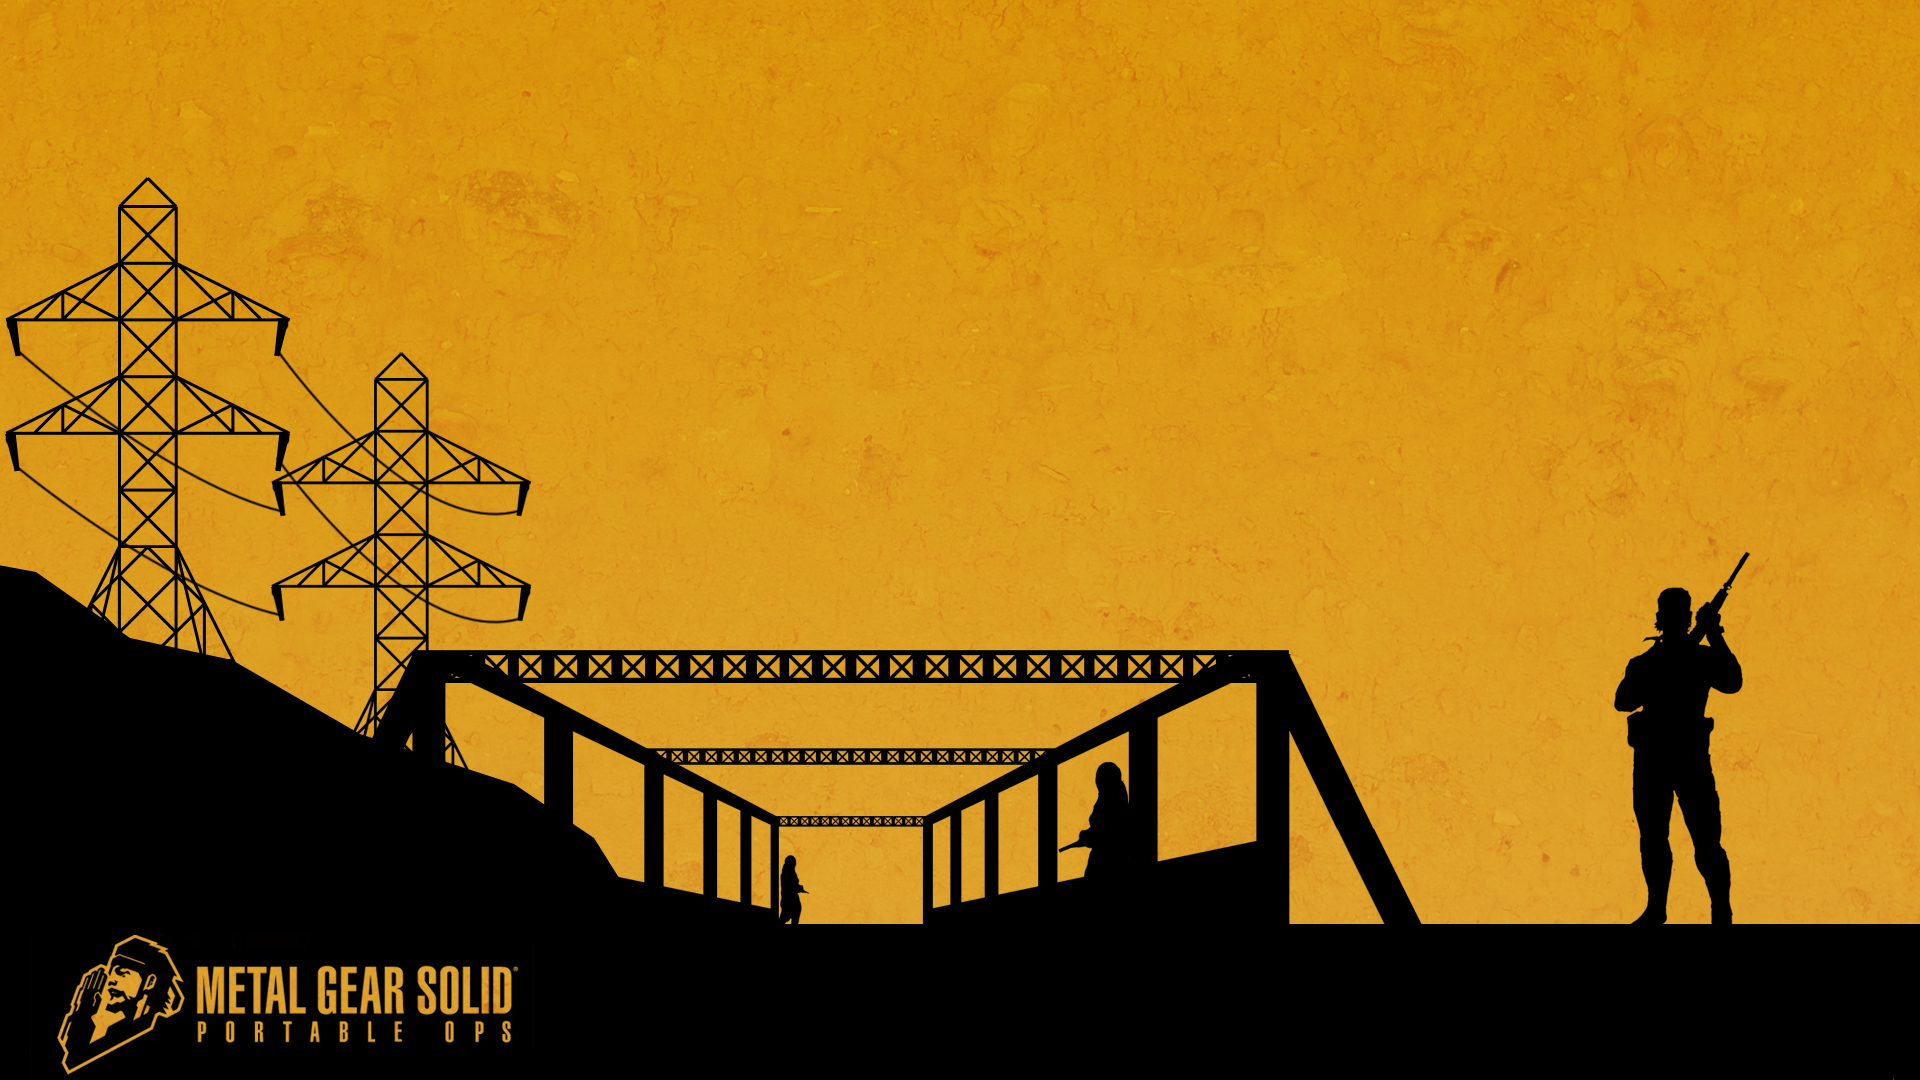 Metal Gear Solid: Portable Ops HD Wallpaper